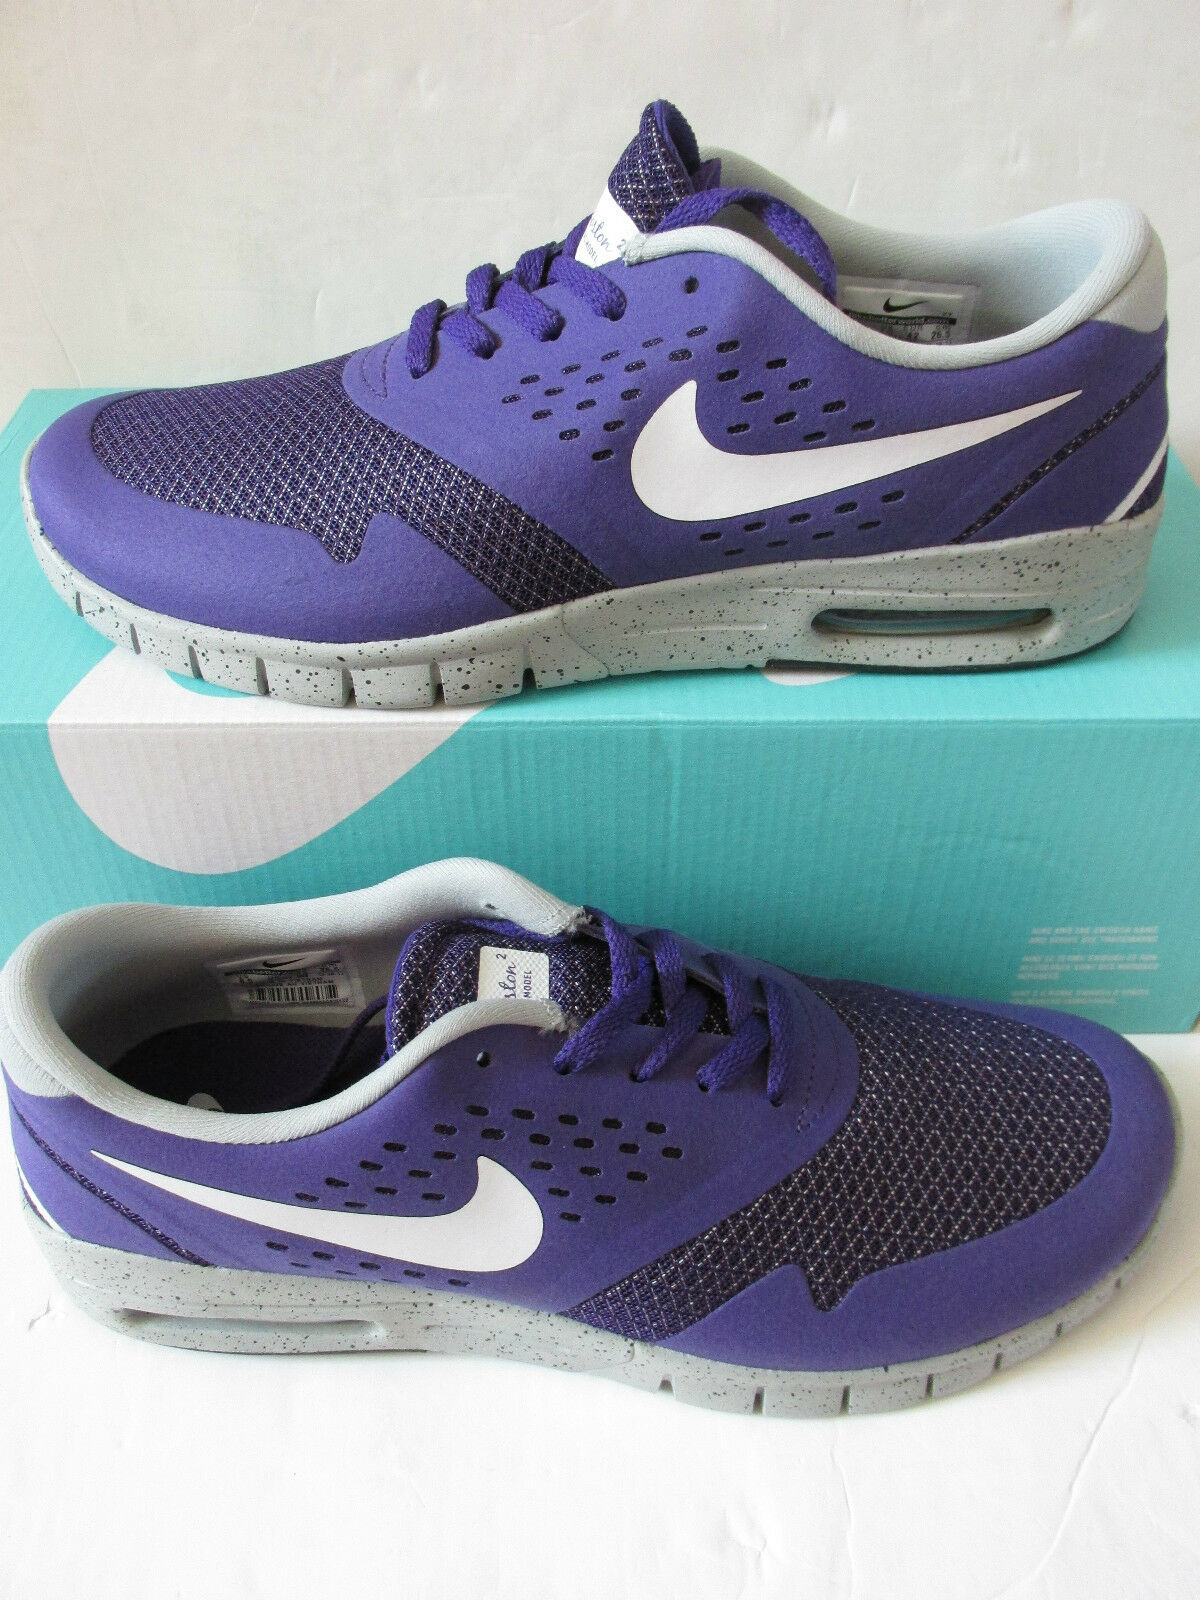 nike SB eric koston 2 max homme  trainers 631047 500 sneakers  chaussures